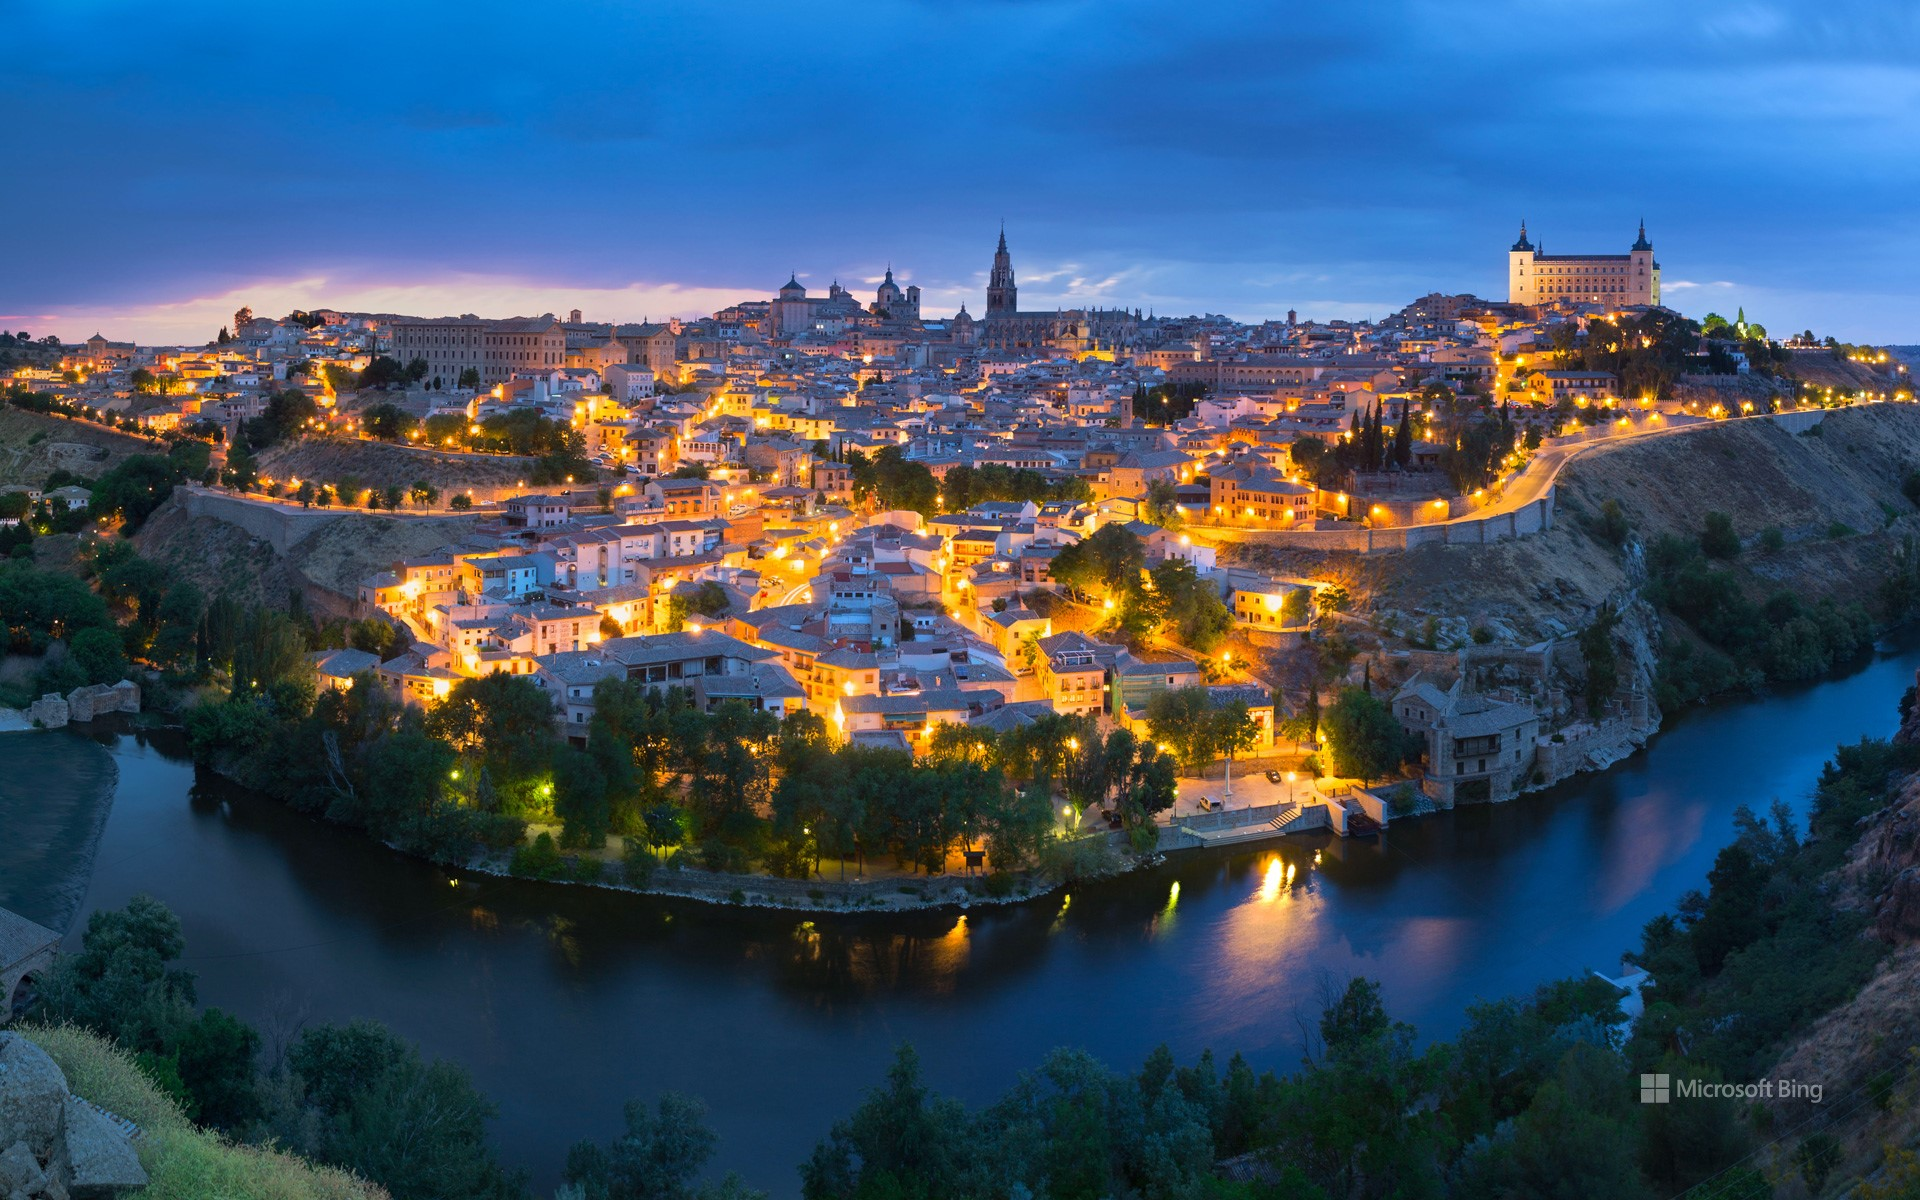 Panoramic view of the city of Toledo after sunset, Spain